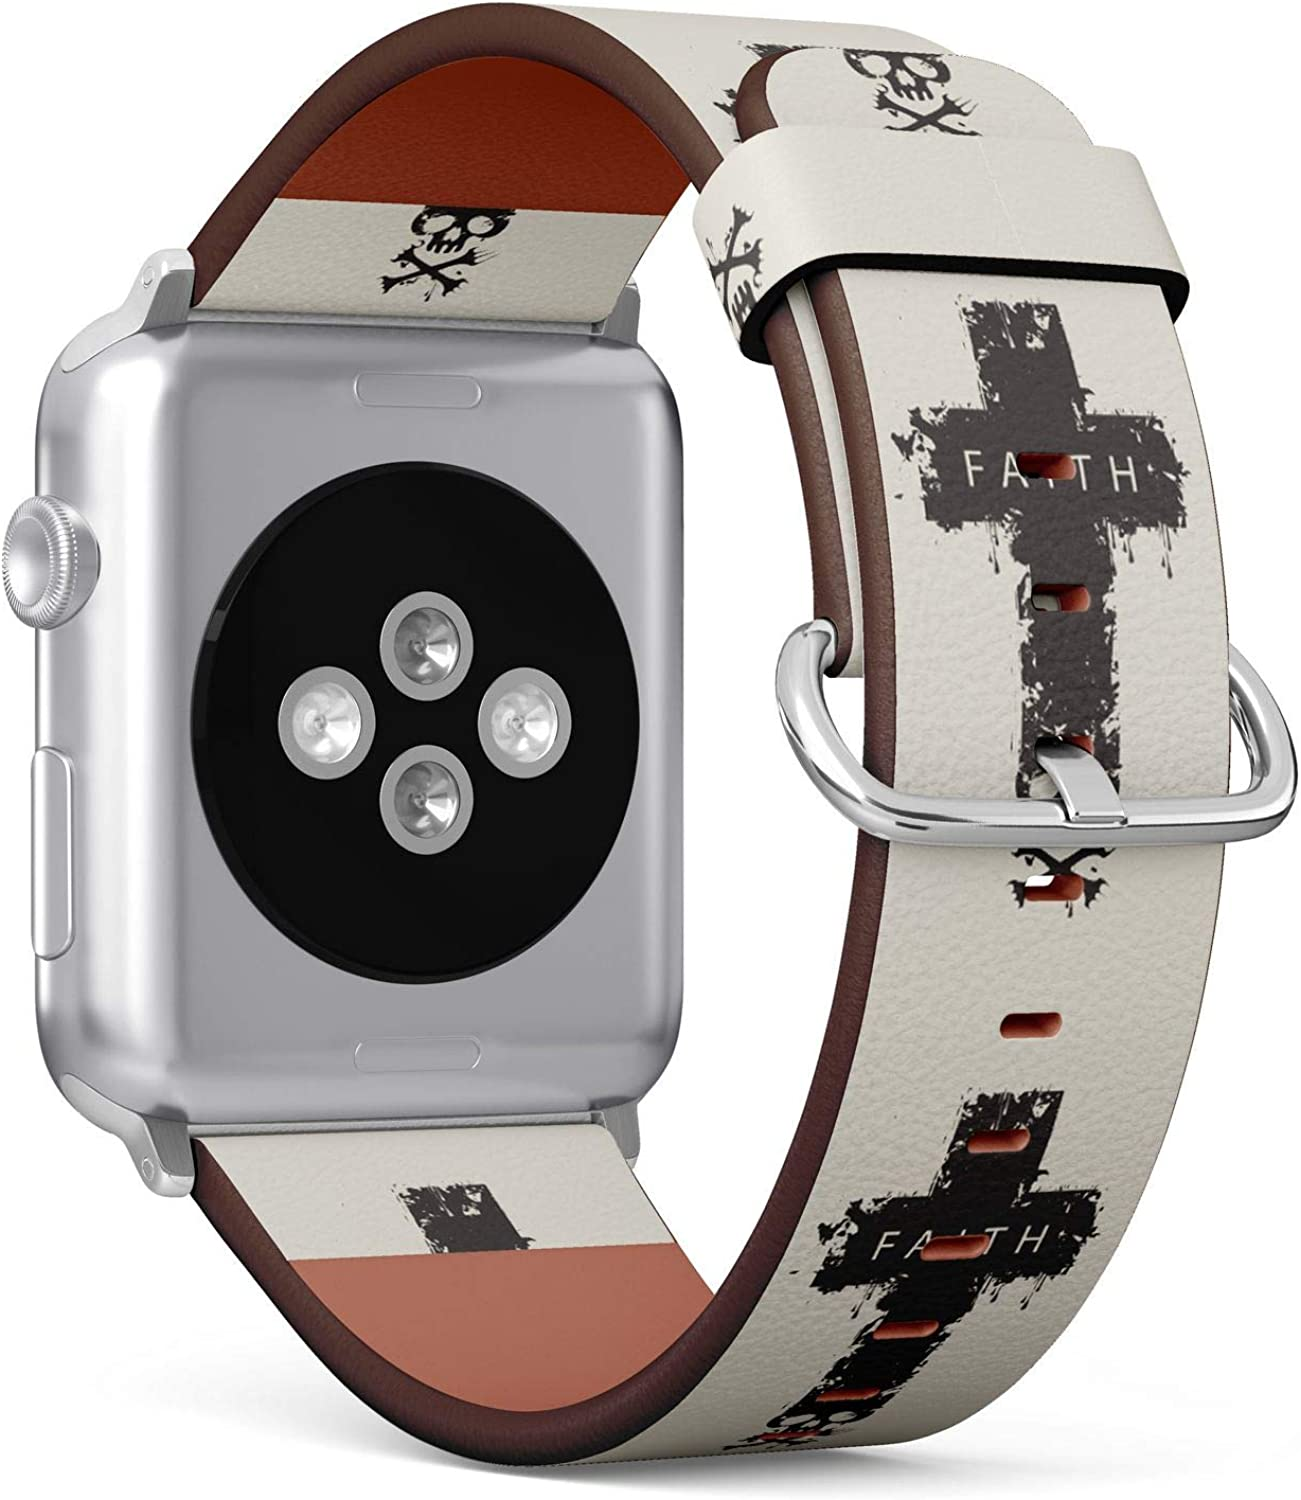 (Christian Cross with a Skull and Cross-Bones with Word Faith) Patterned Leather Wristband Strap for Apple Watch Series 4/3/2/1 gen,Replacement for iWatch 42mm / 44mm Bands